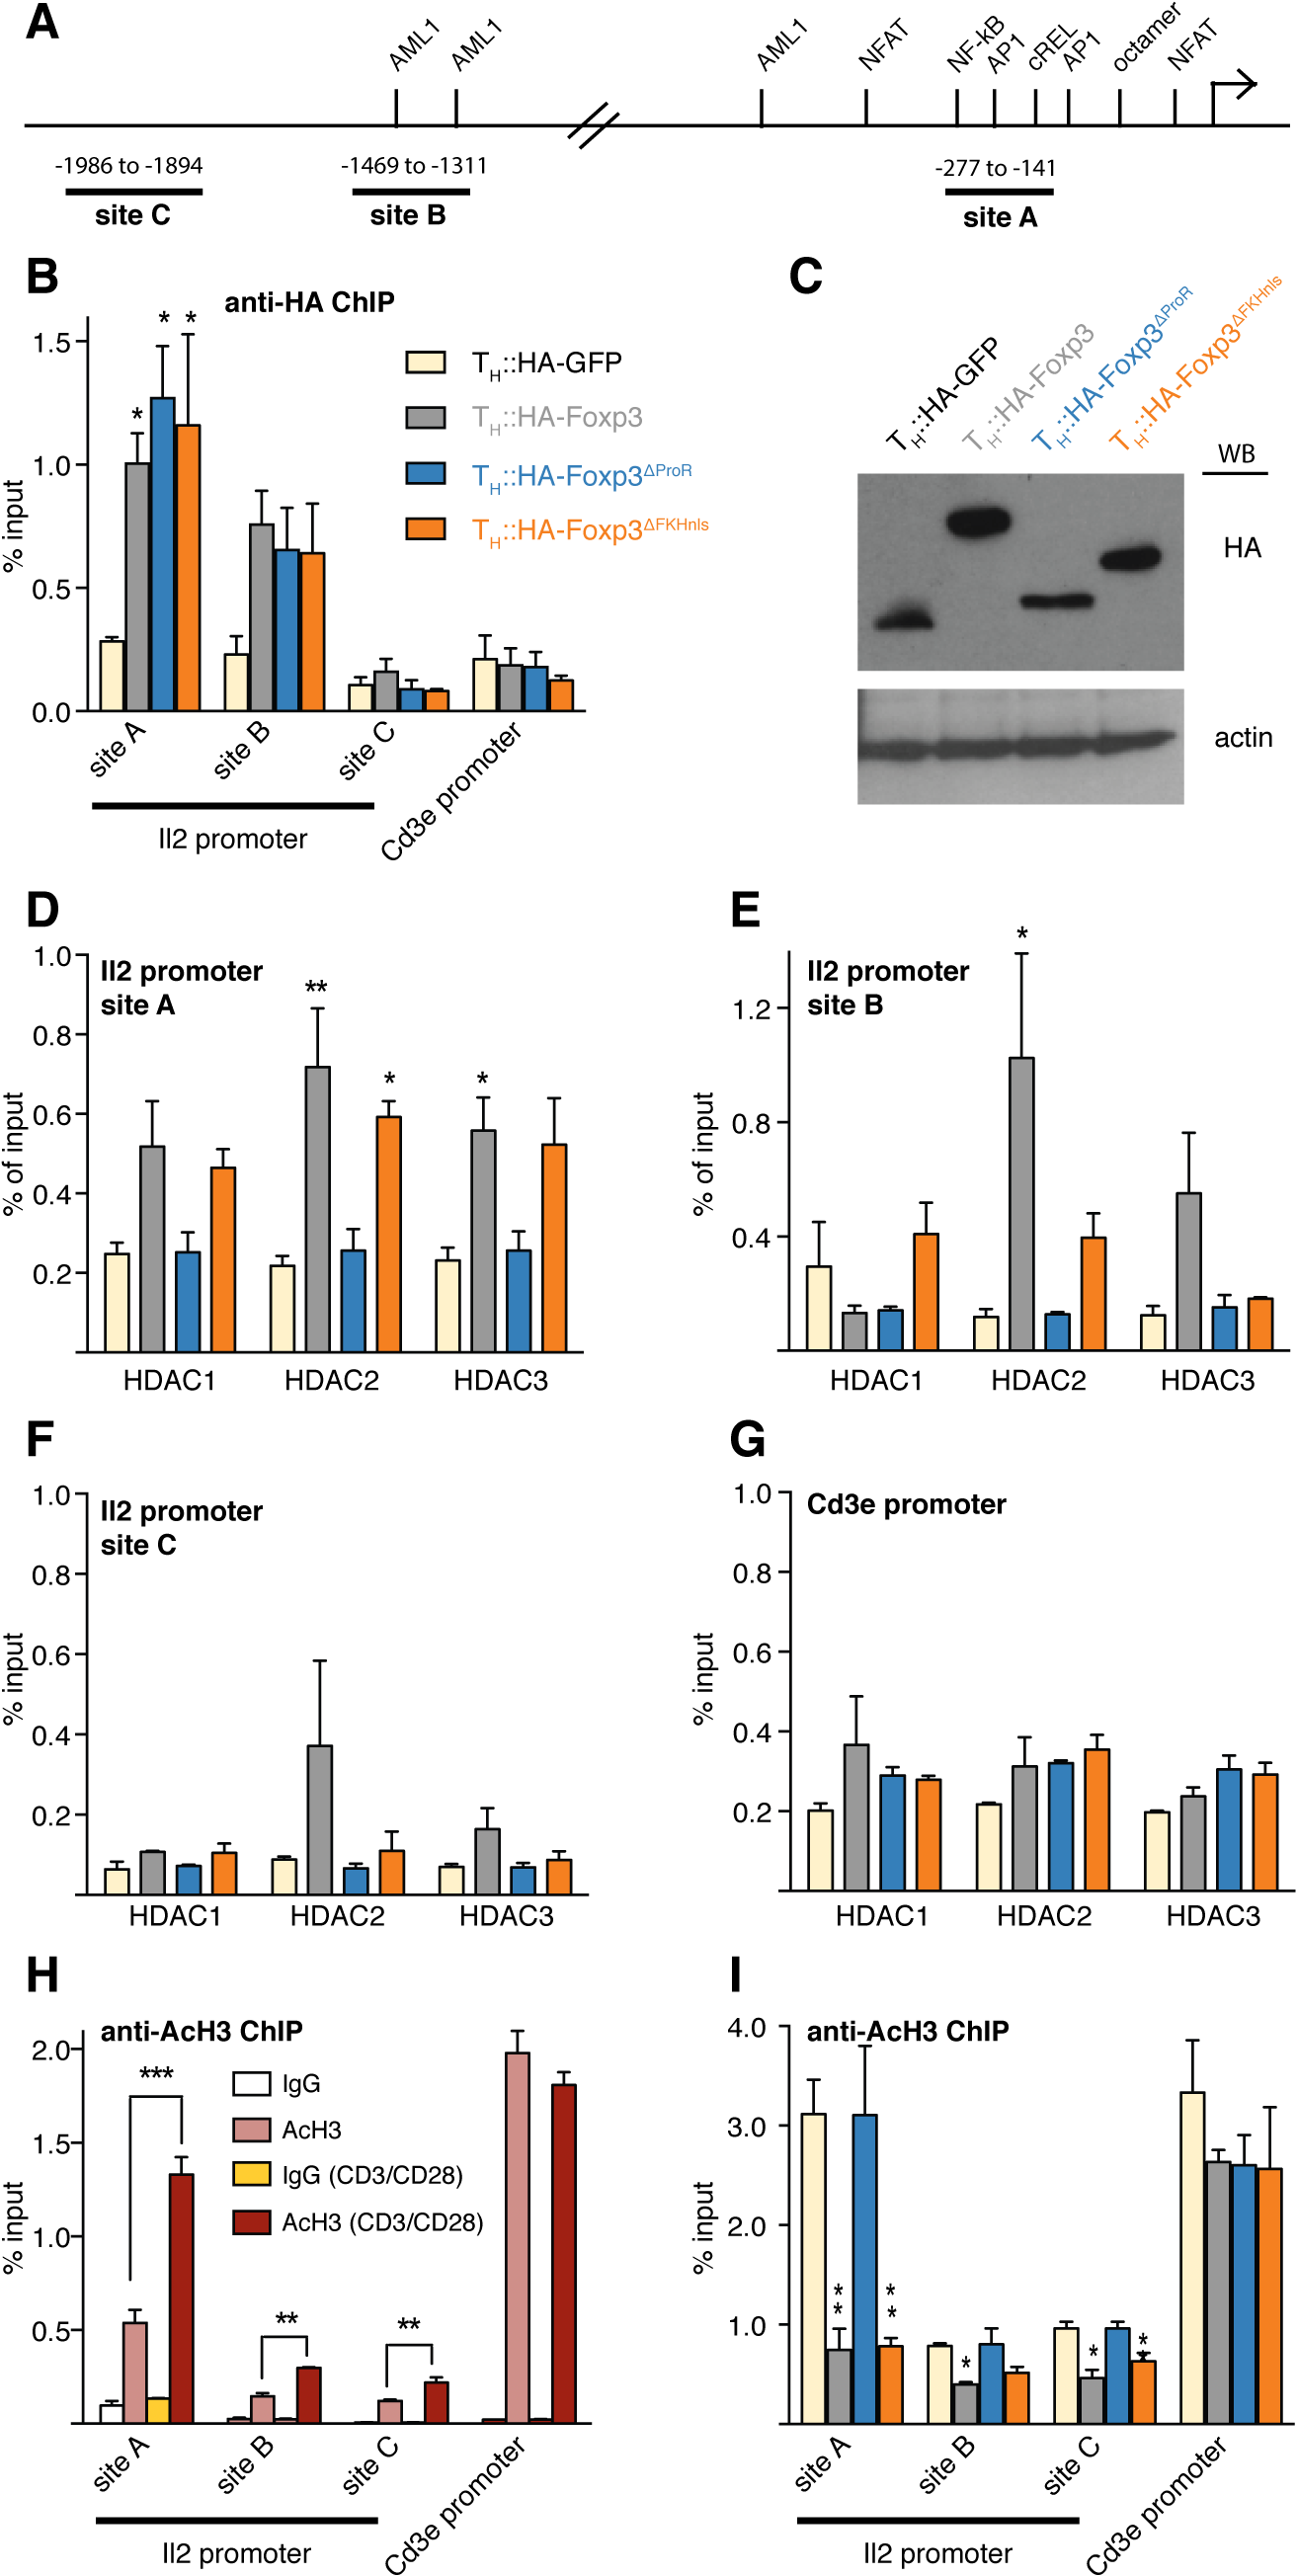 Foxp3 recruits class I HDACs to modulate histone acetylation of the <i>Il2</i> promoter.